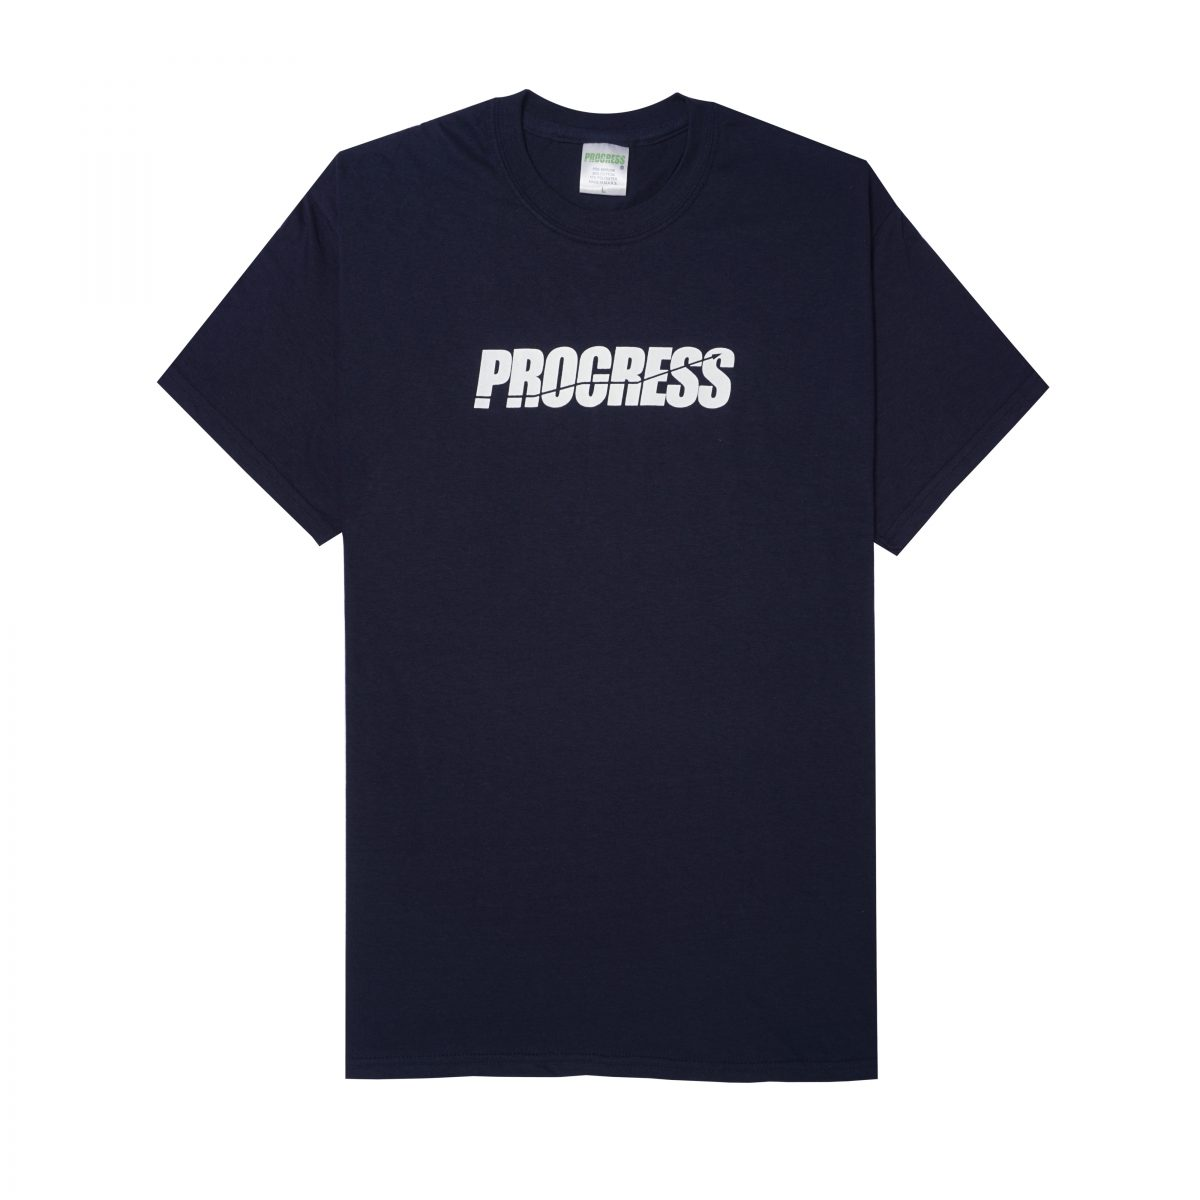 LOGO TEE WHITE ON NAVY BLUE